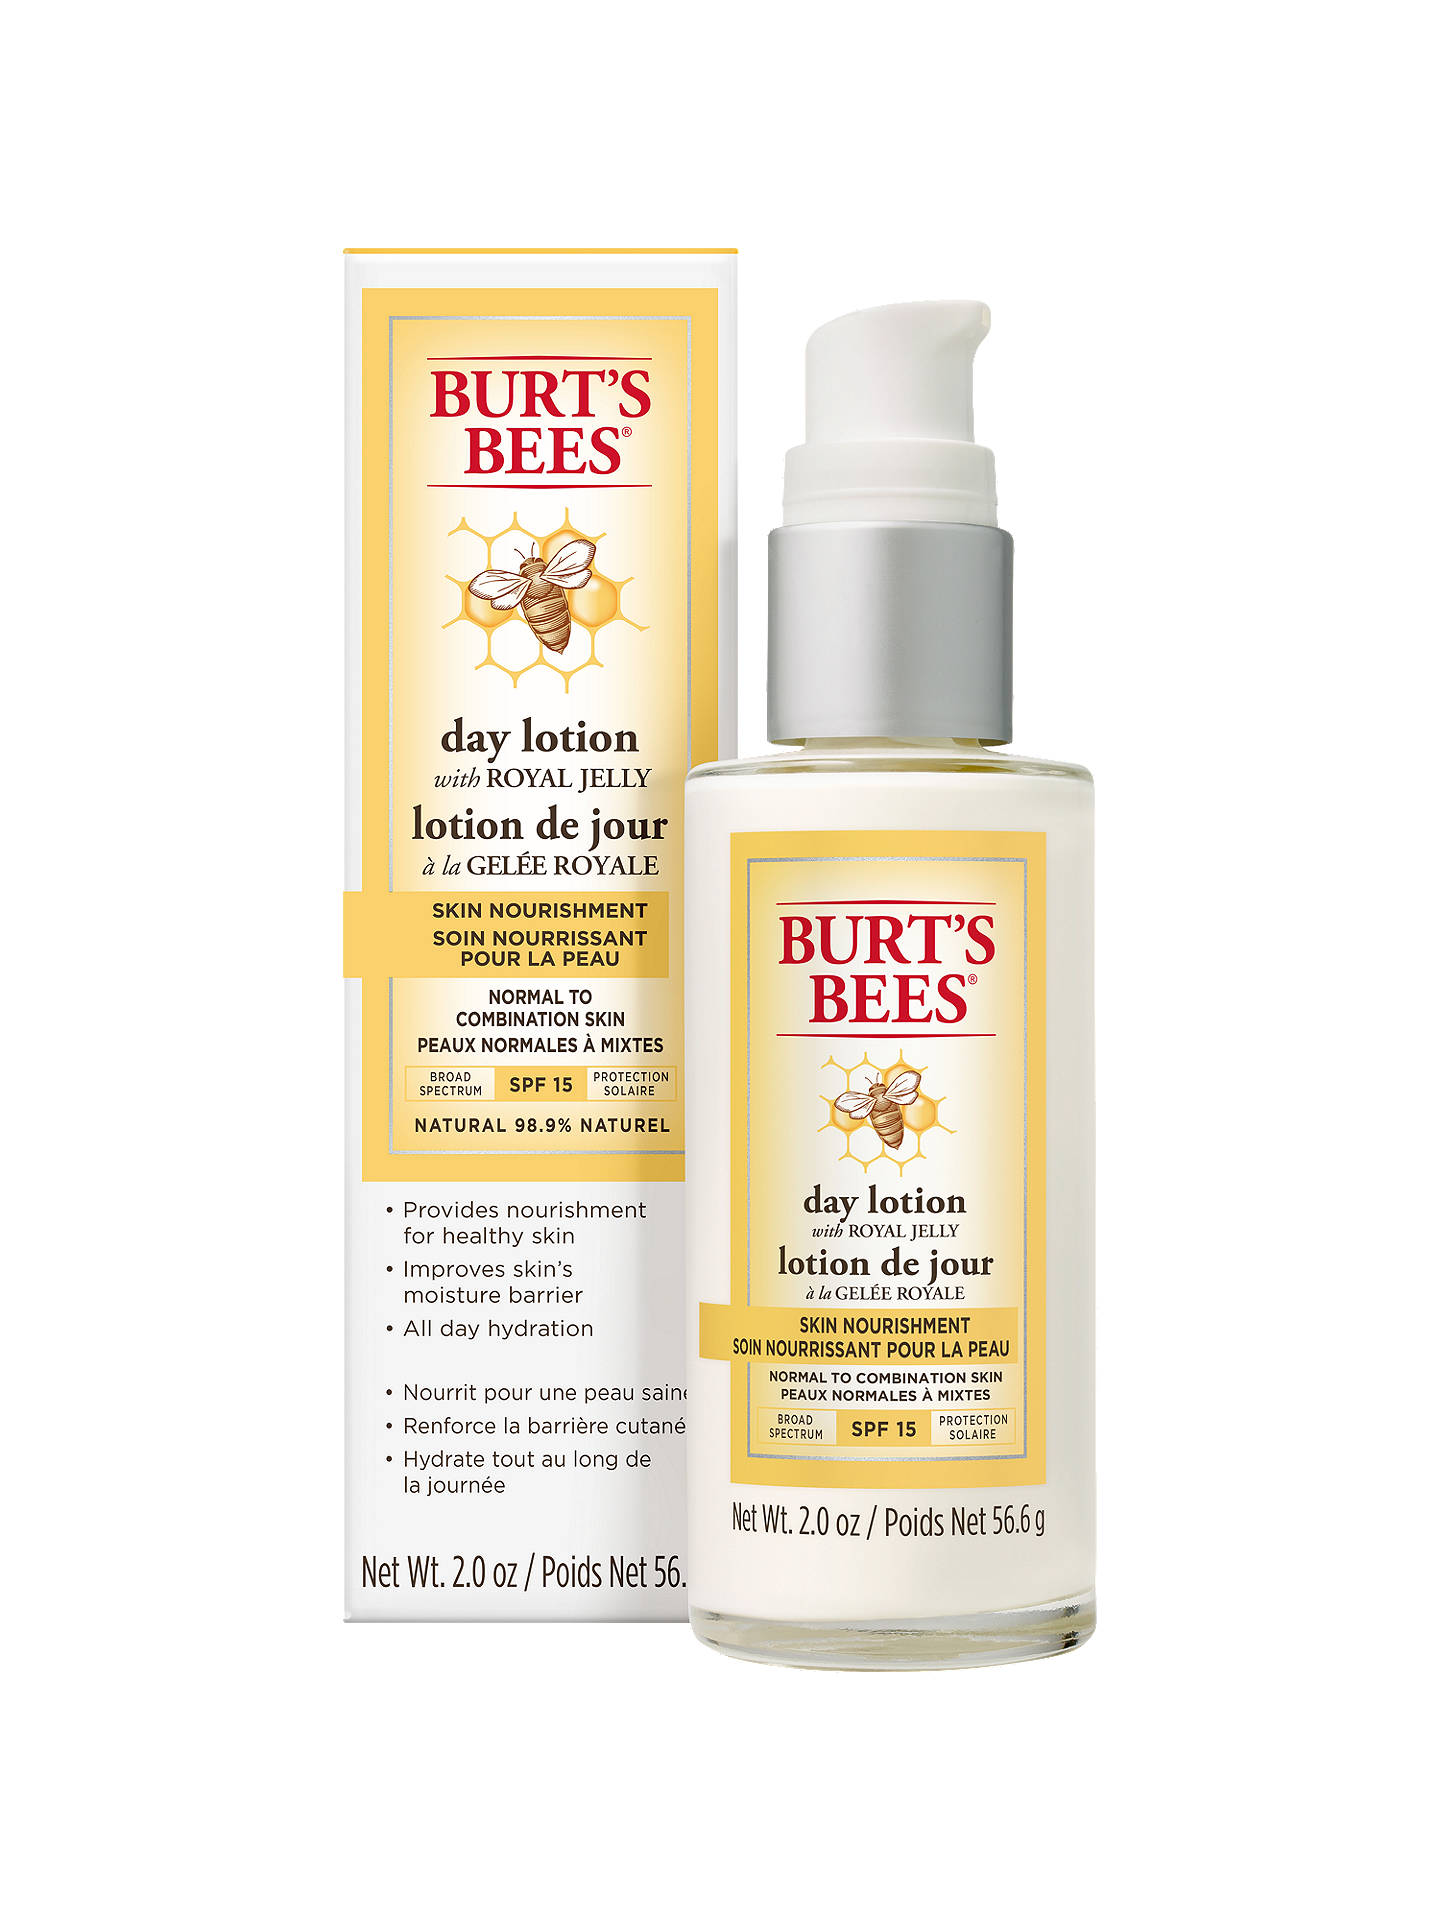 Buy Burt's Bees Skin Nourishment SPF 15 Day Lotion, 56.6g Online at johnlewis.com